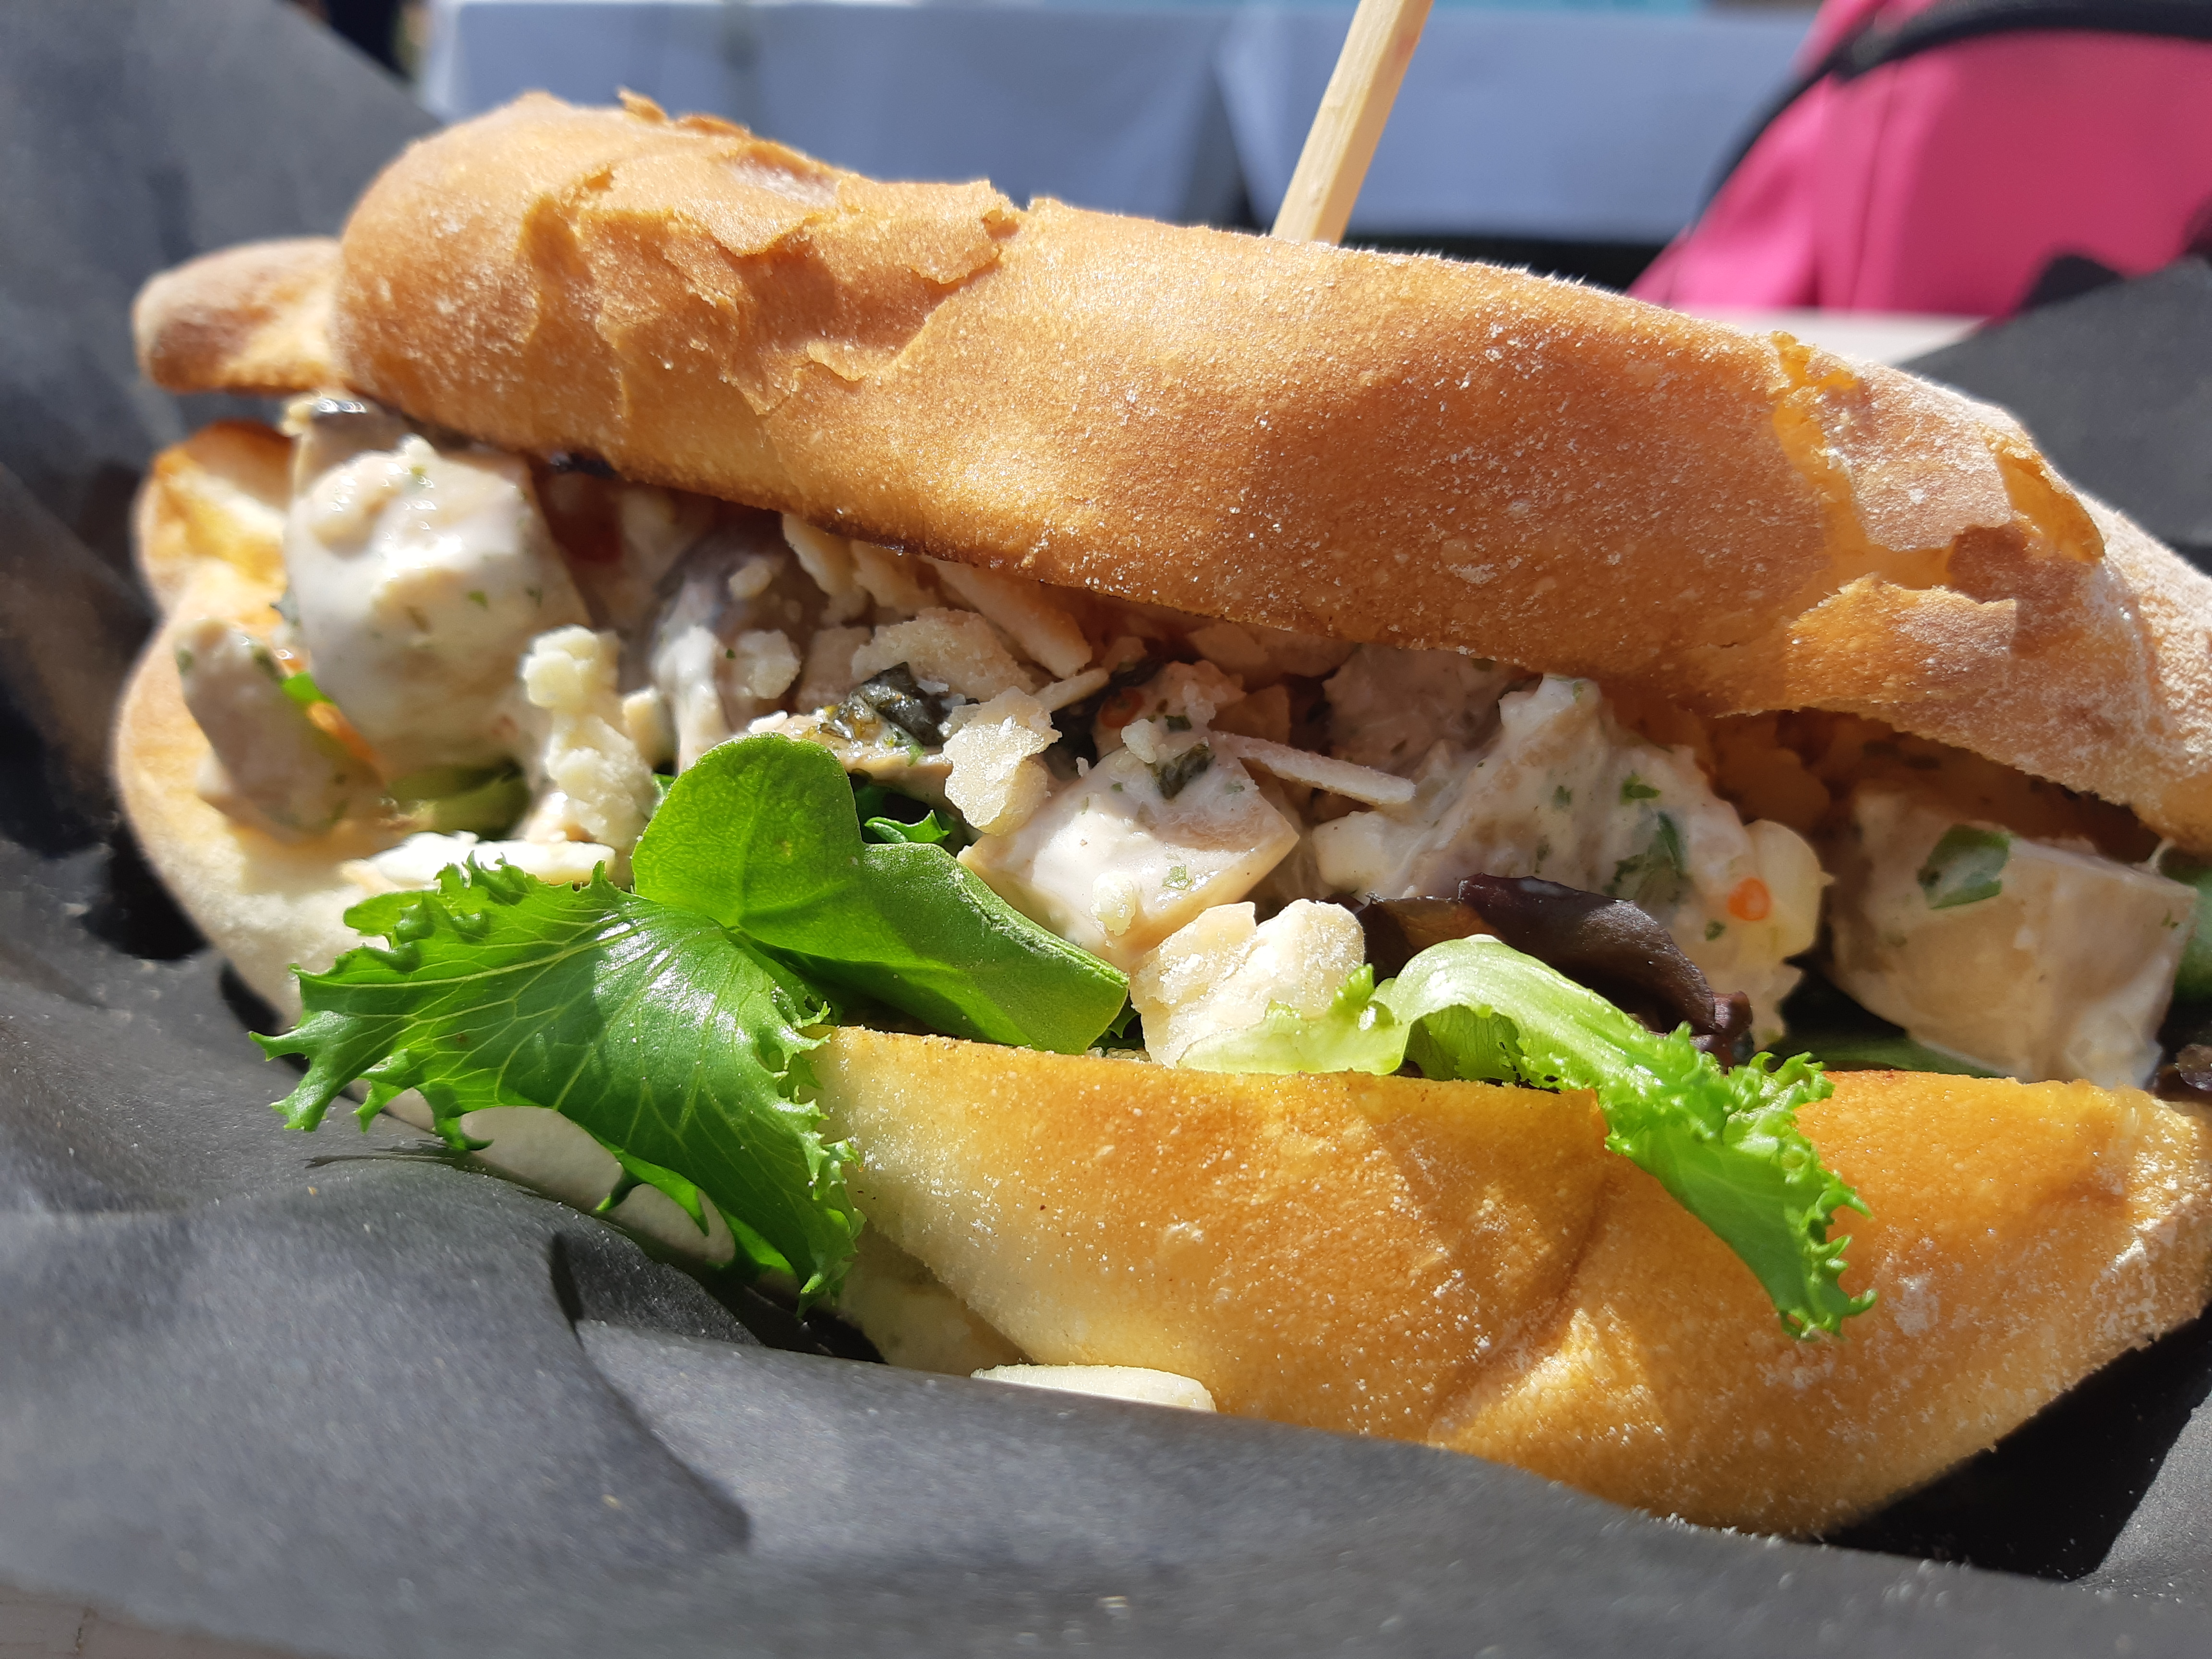 AterImber.com - The Veg Life - Vegandale Festival 2019 Review - Main Vegan Deli Lobstar Roll - vegan food, food reviewer, vegan festival